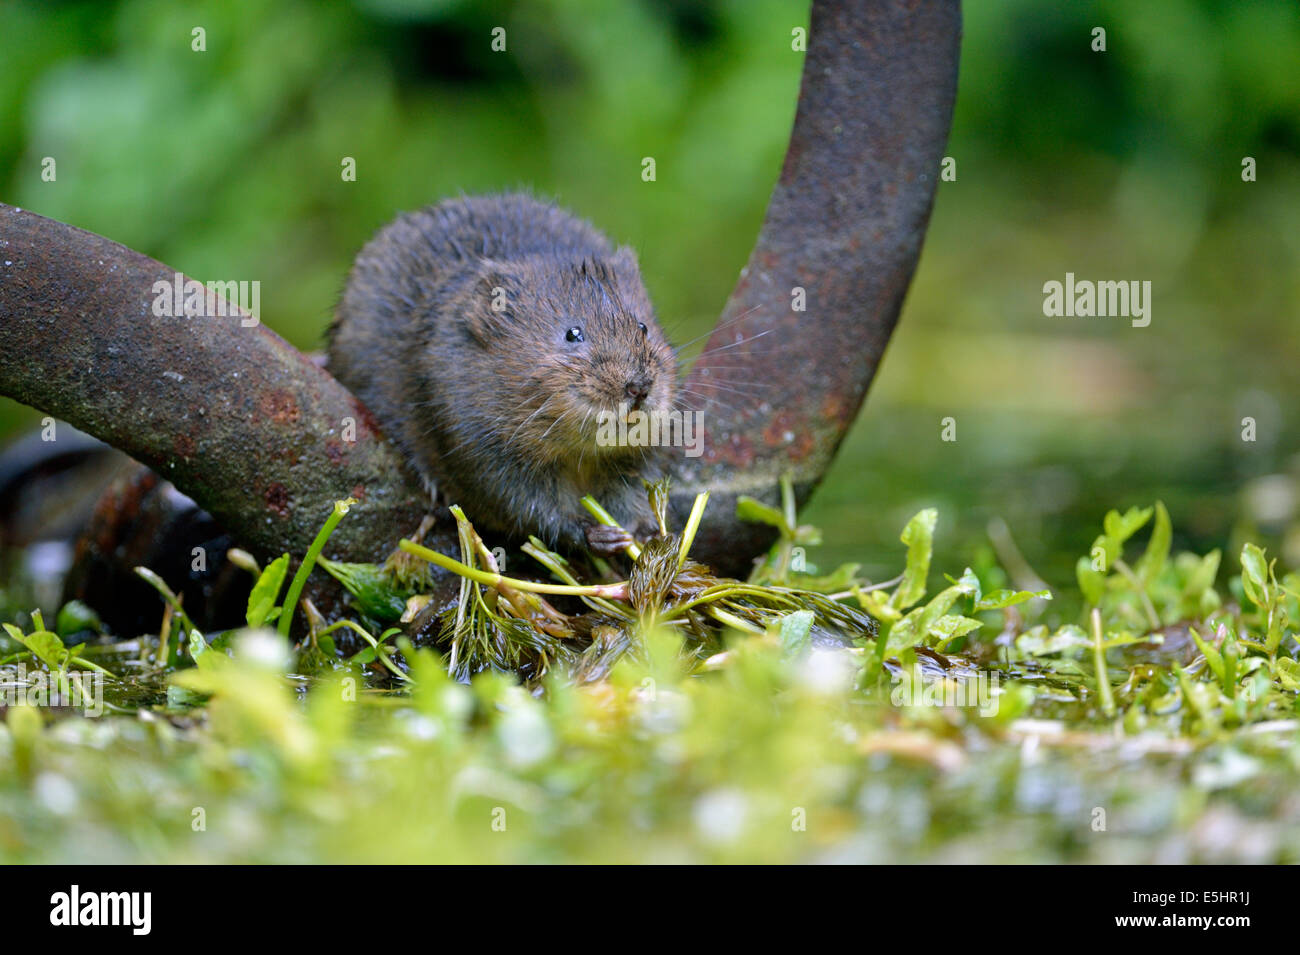 Water vole (Arvicola amphibius), UK - Stock Image